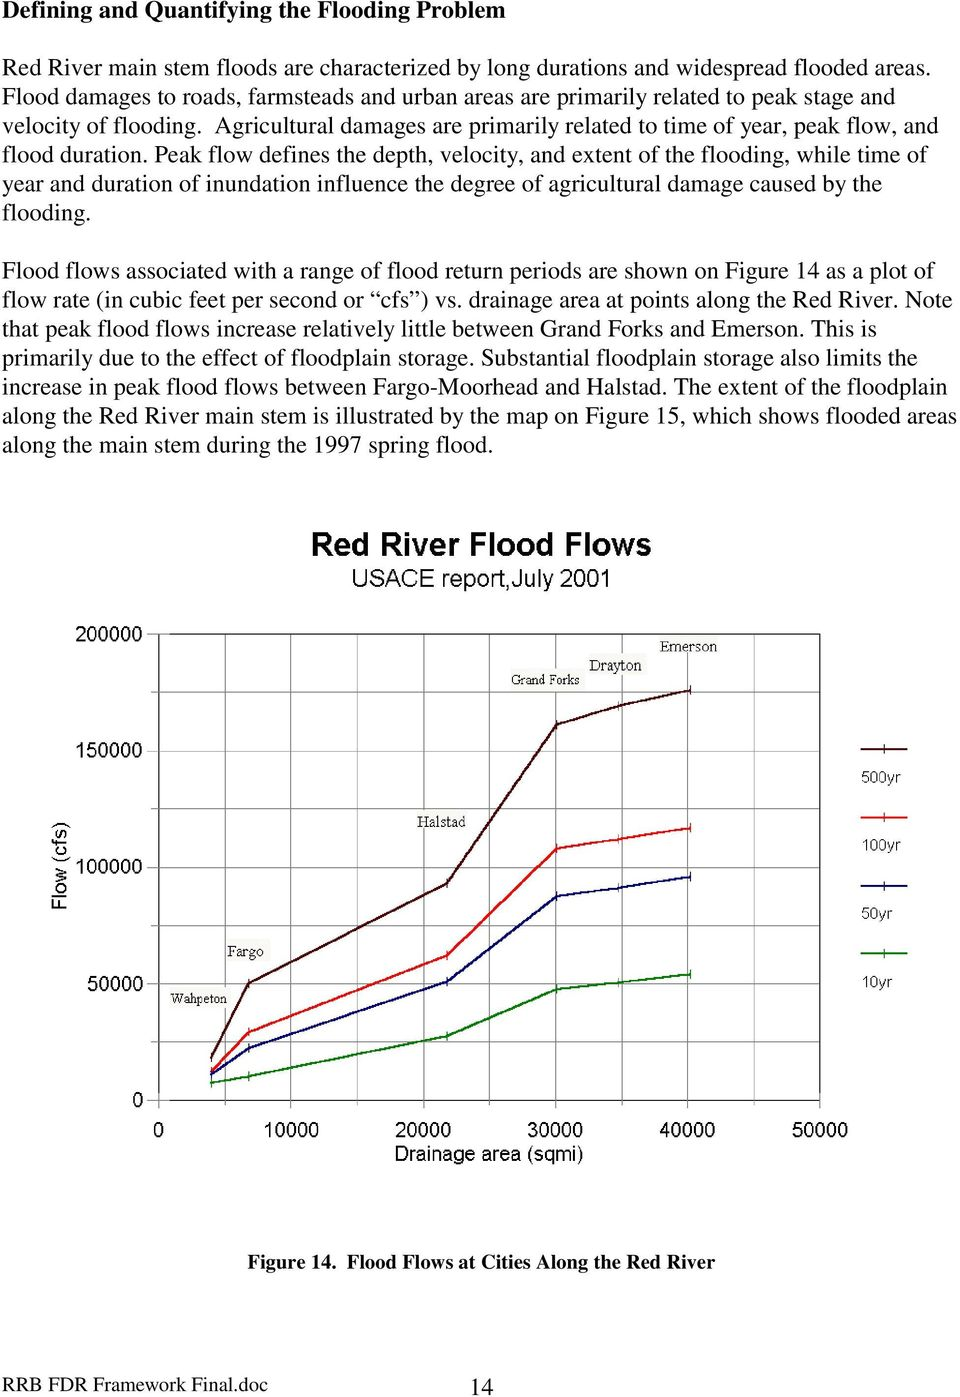 Agricultural damages are primarily related to time of year, peak flow, and flood duration.